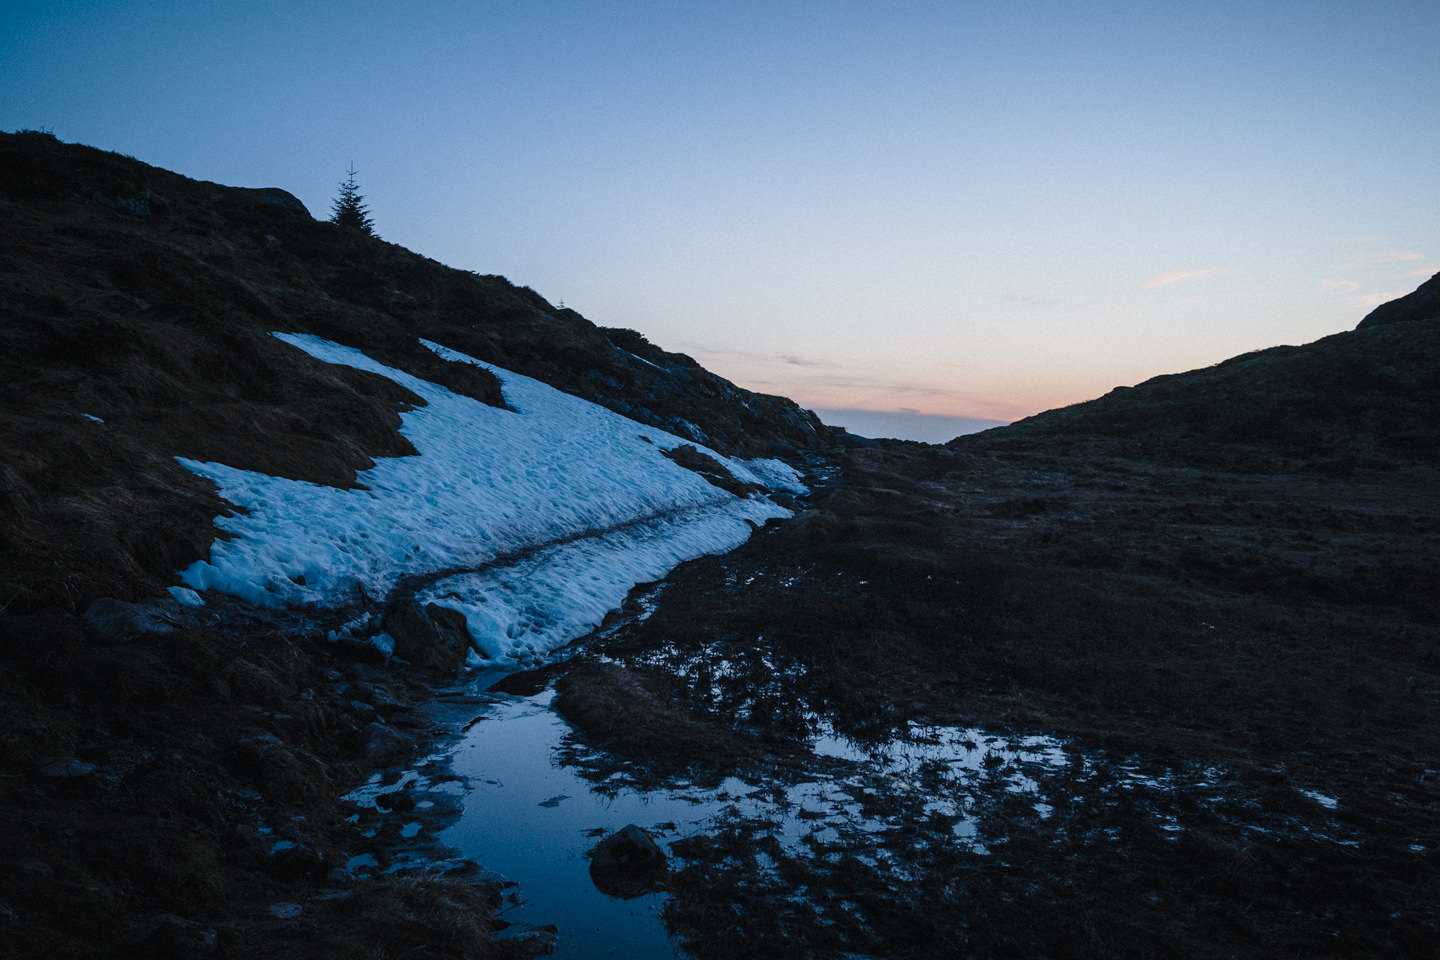 A pile of snow at dusk, with a footpath through it